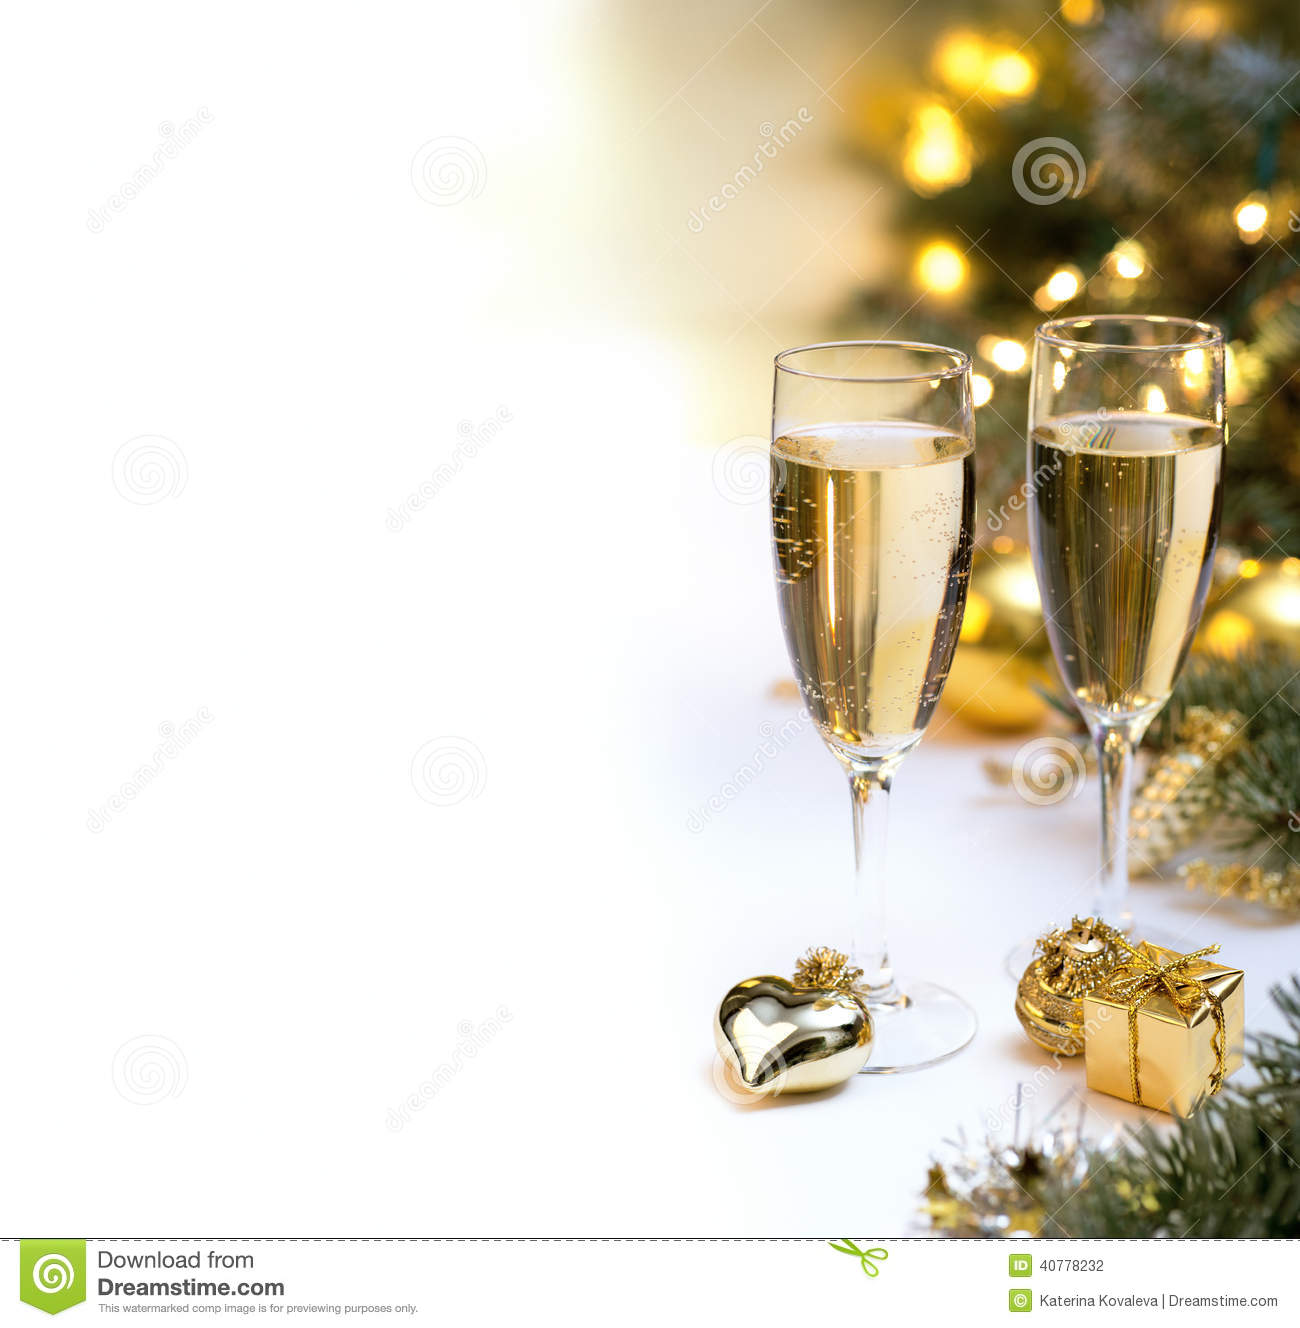 Christmas Table Set With Champagne Glasses For Postcards Stock Photo - Image:...